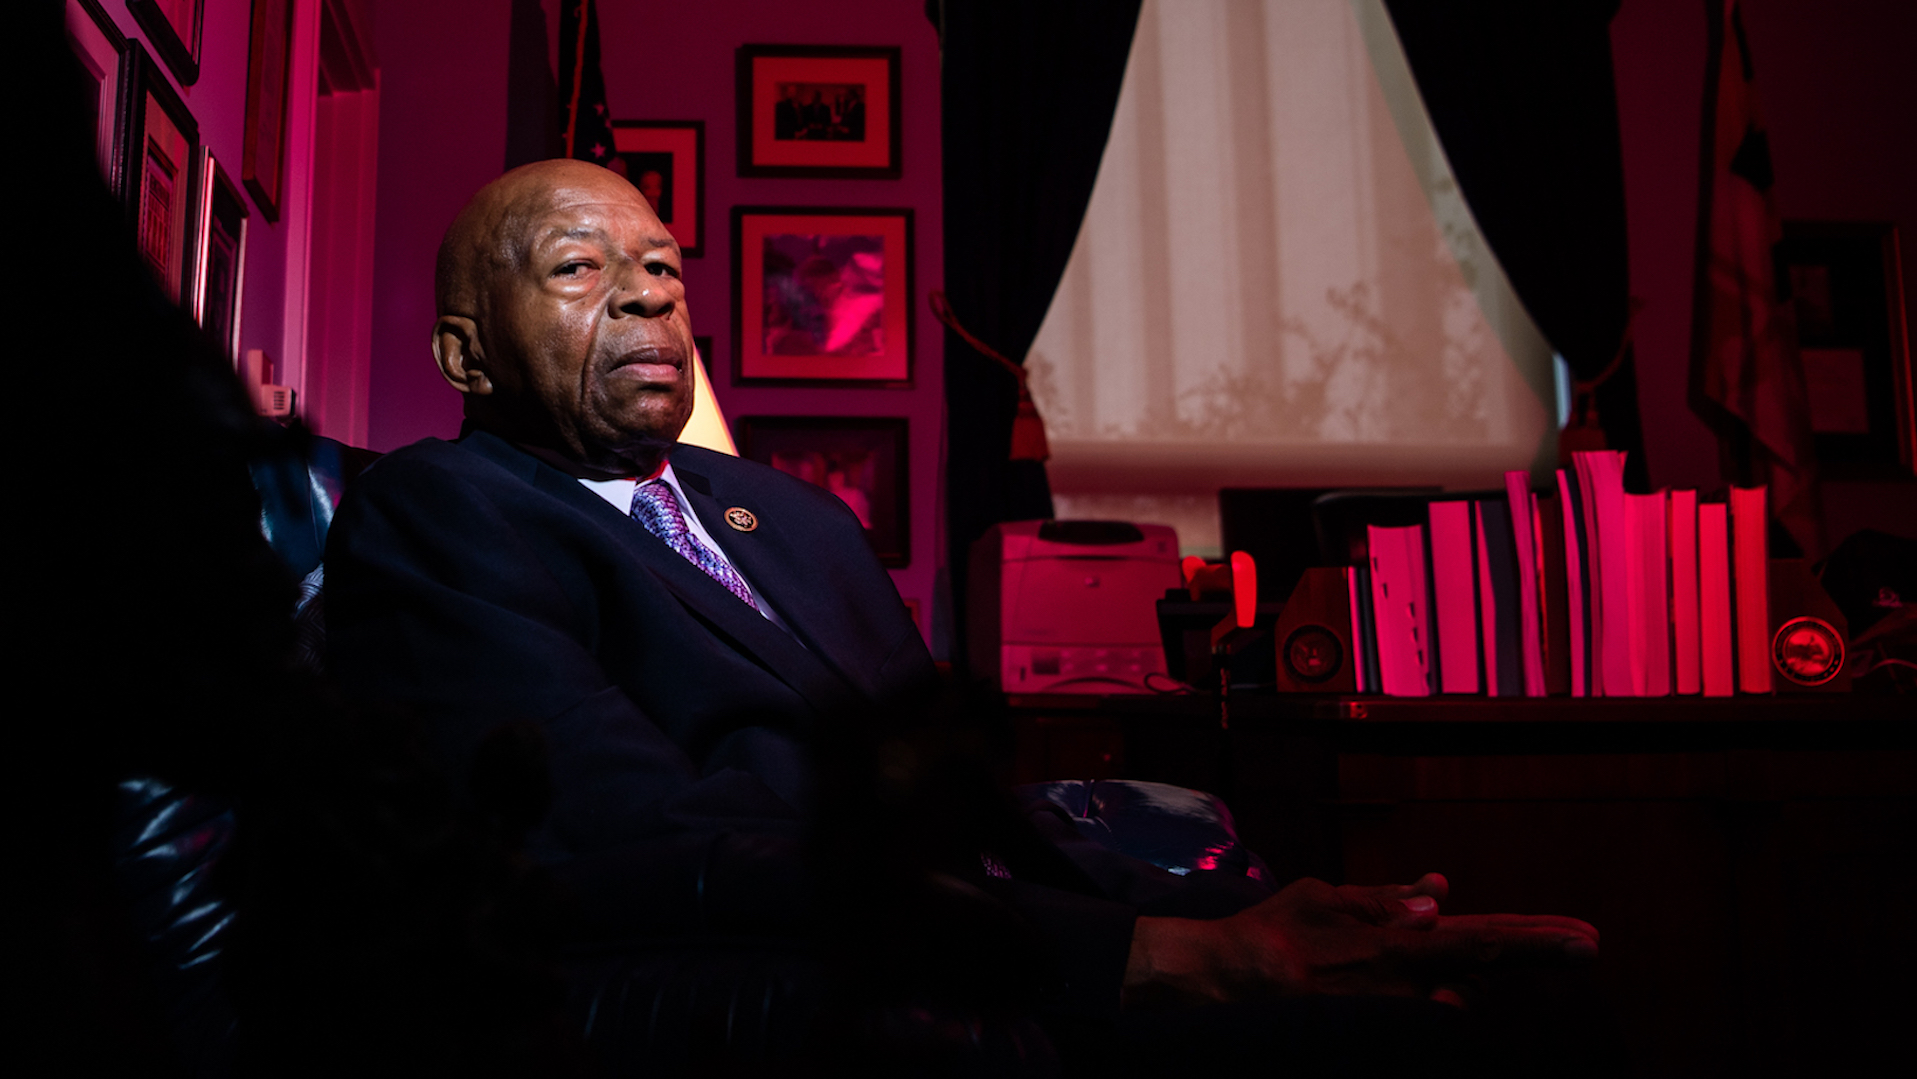 Rep. Elijah Cummings to lie in state at U.S. Capitol before funeral in Baltimore church